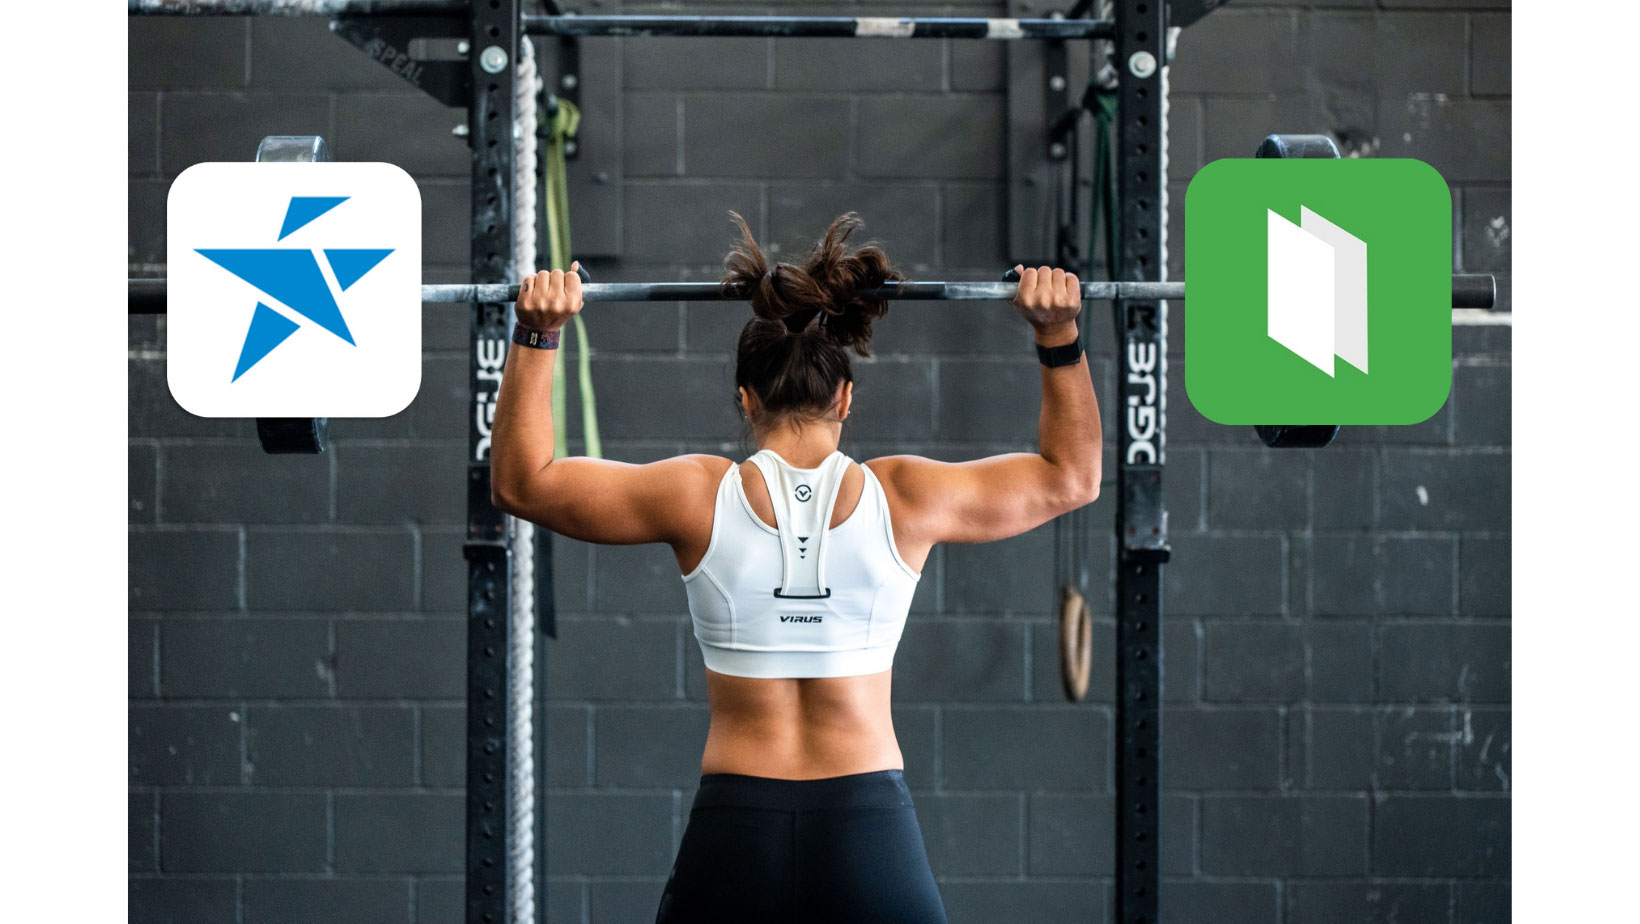 Perfect Gym and Agence Mac Media team up to digitally transform Canadian fitness